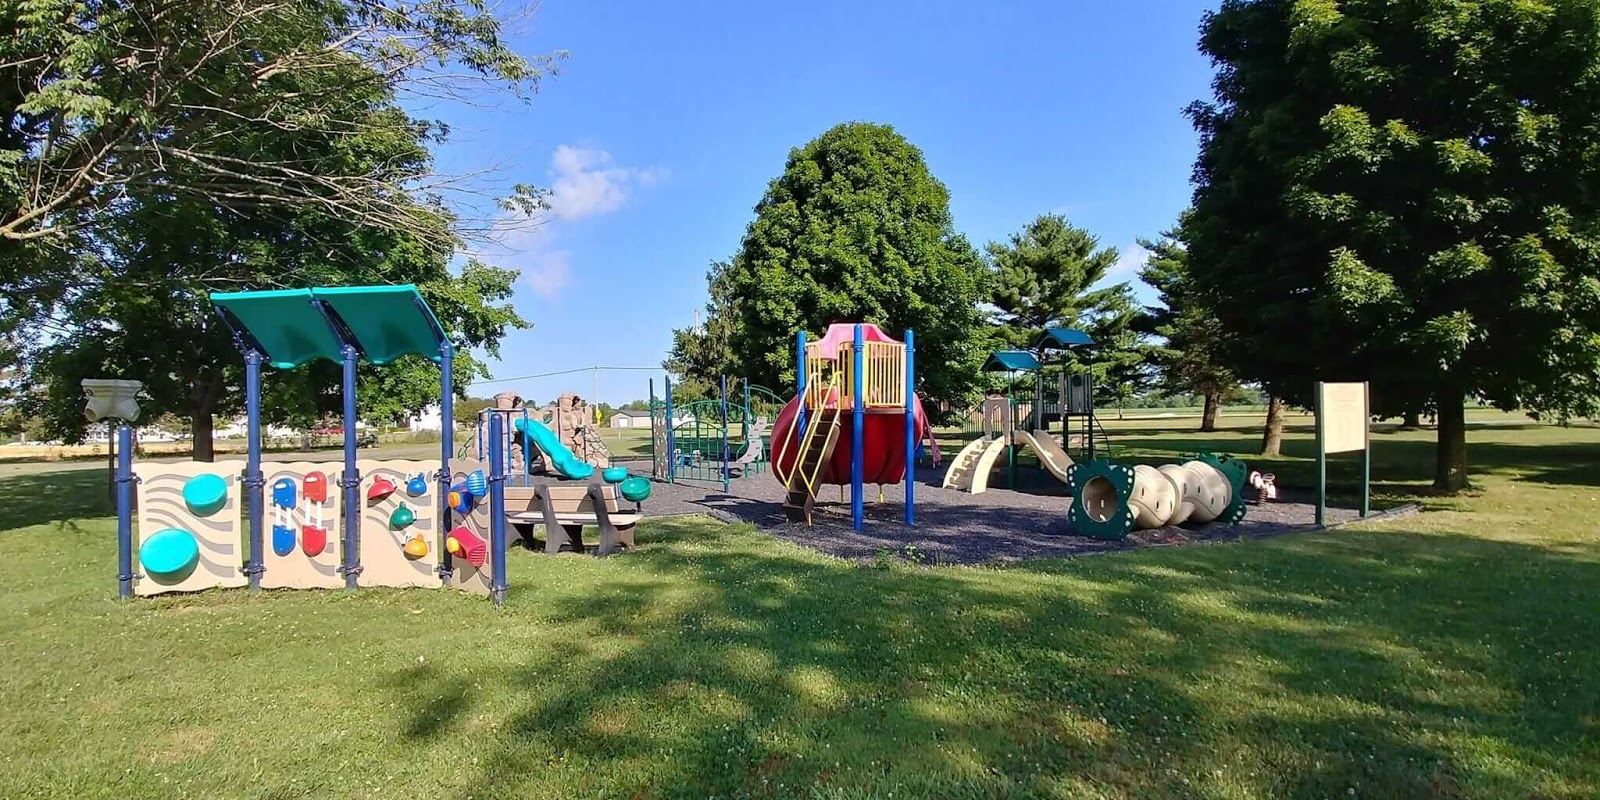 Playground with jungle gym and slides